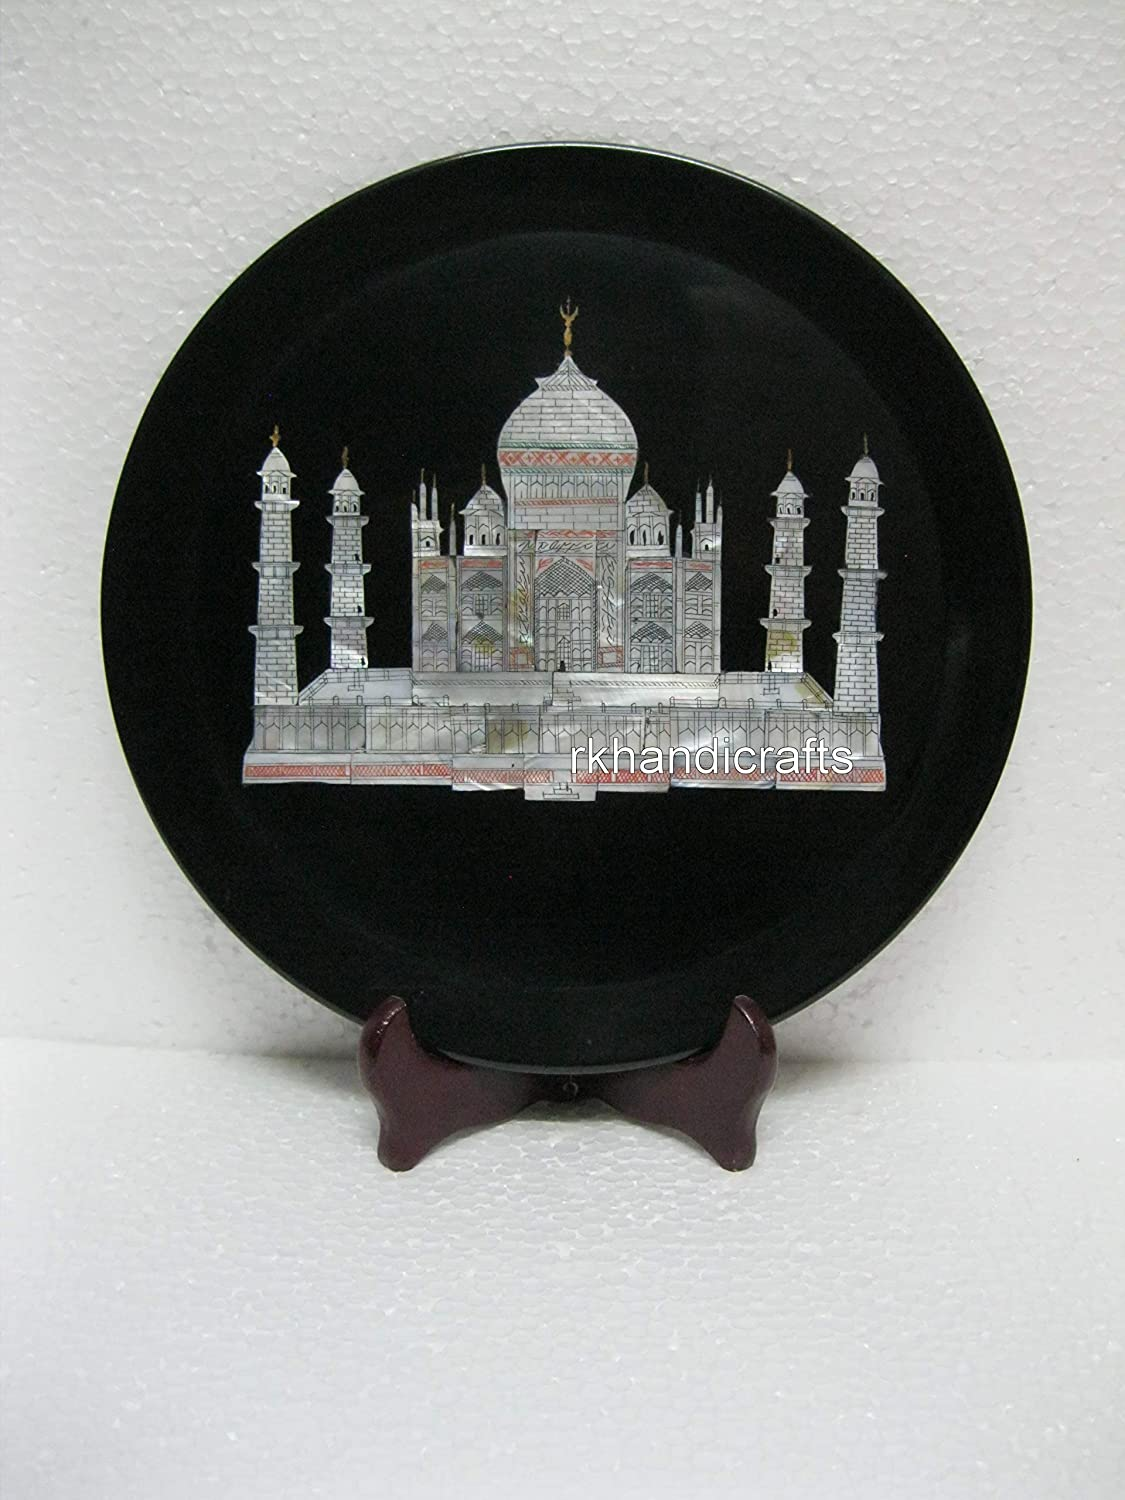 rkhandicrafts 12 Inches Black Be super welcome Marble Plate be excellence Can Decorative Use